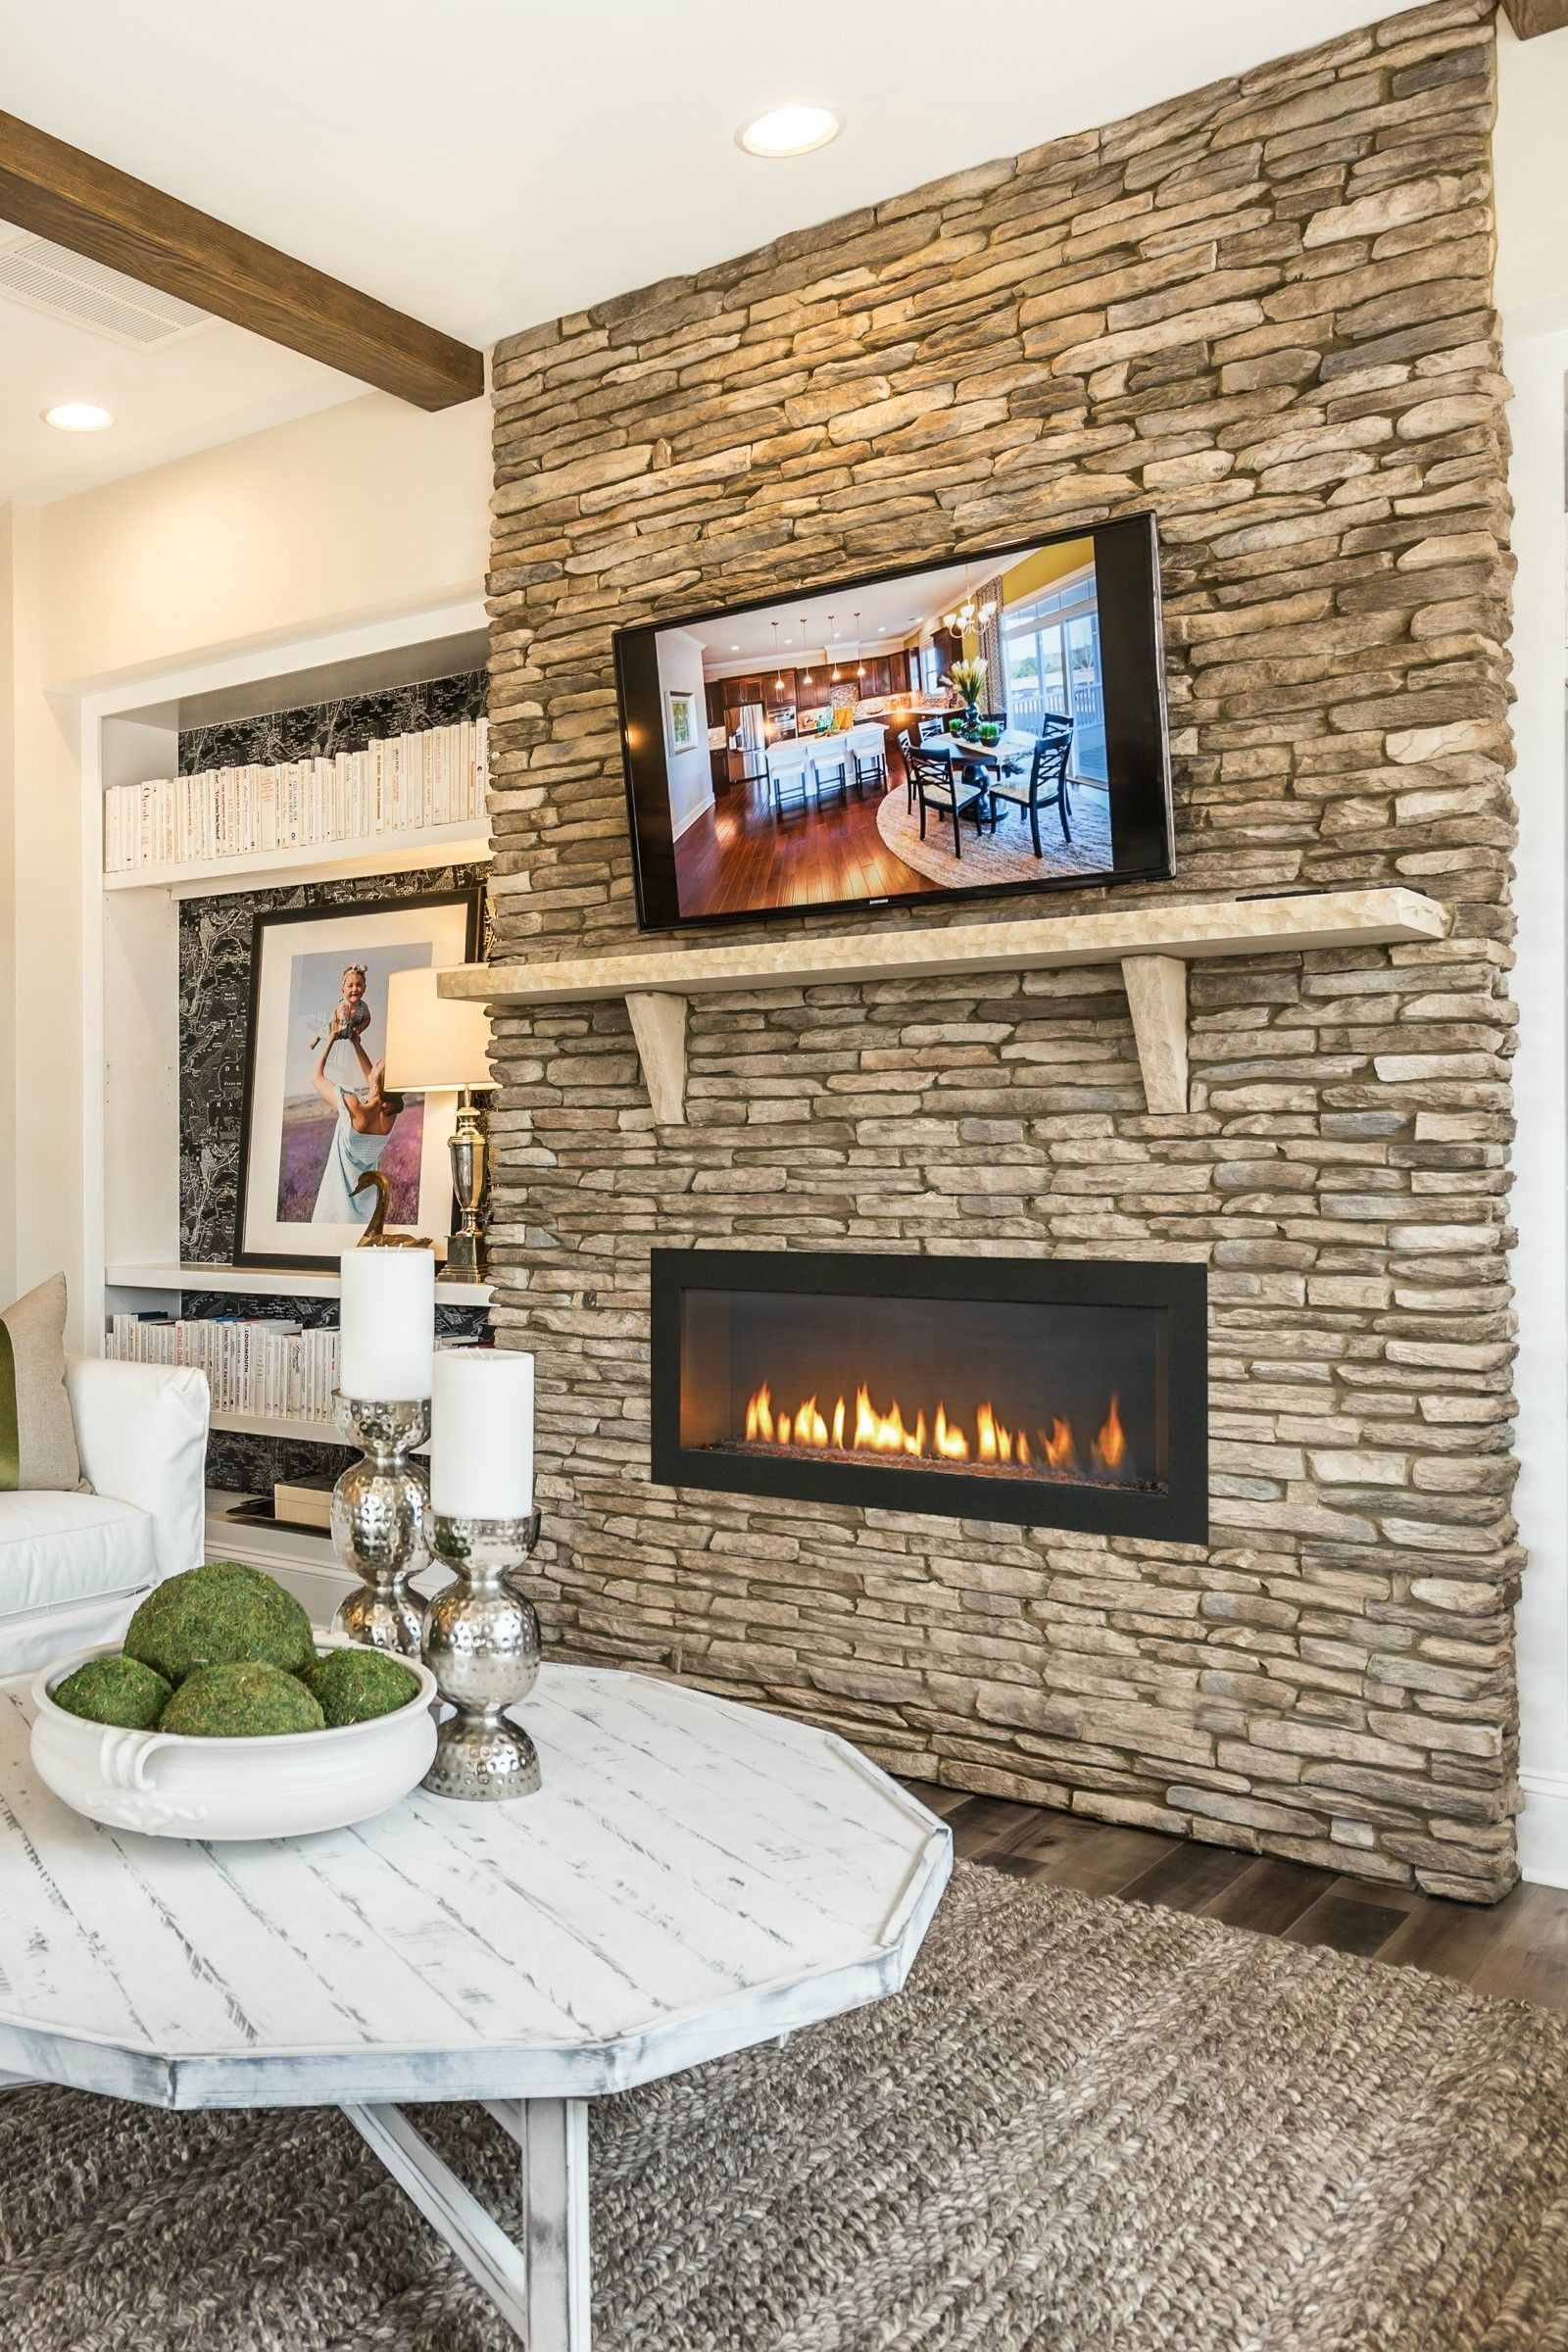 A Stacked Stone Wall Accented By Heat Glos Cosmo Gas Fireplace Anchors This Modern Farmhouse Living Room Designed